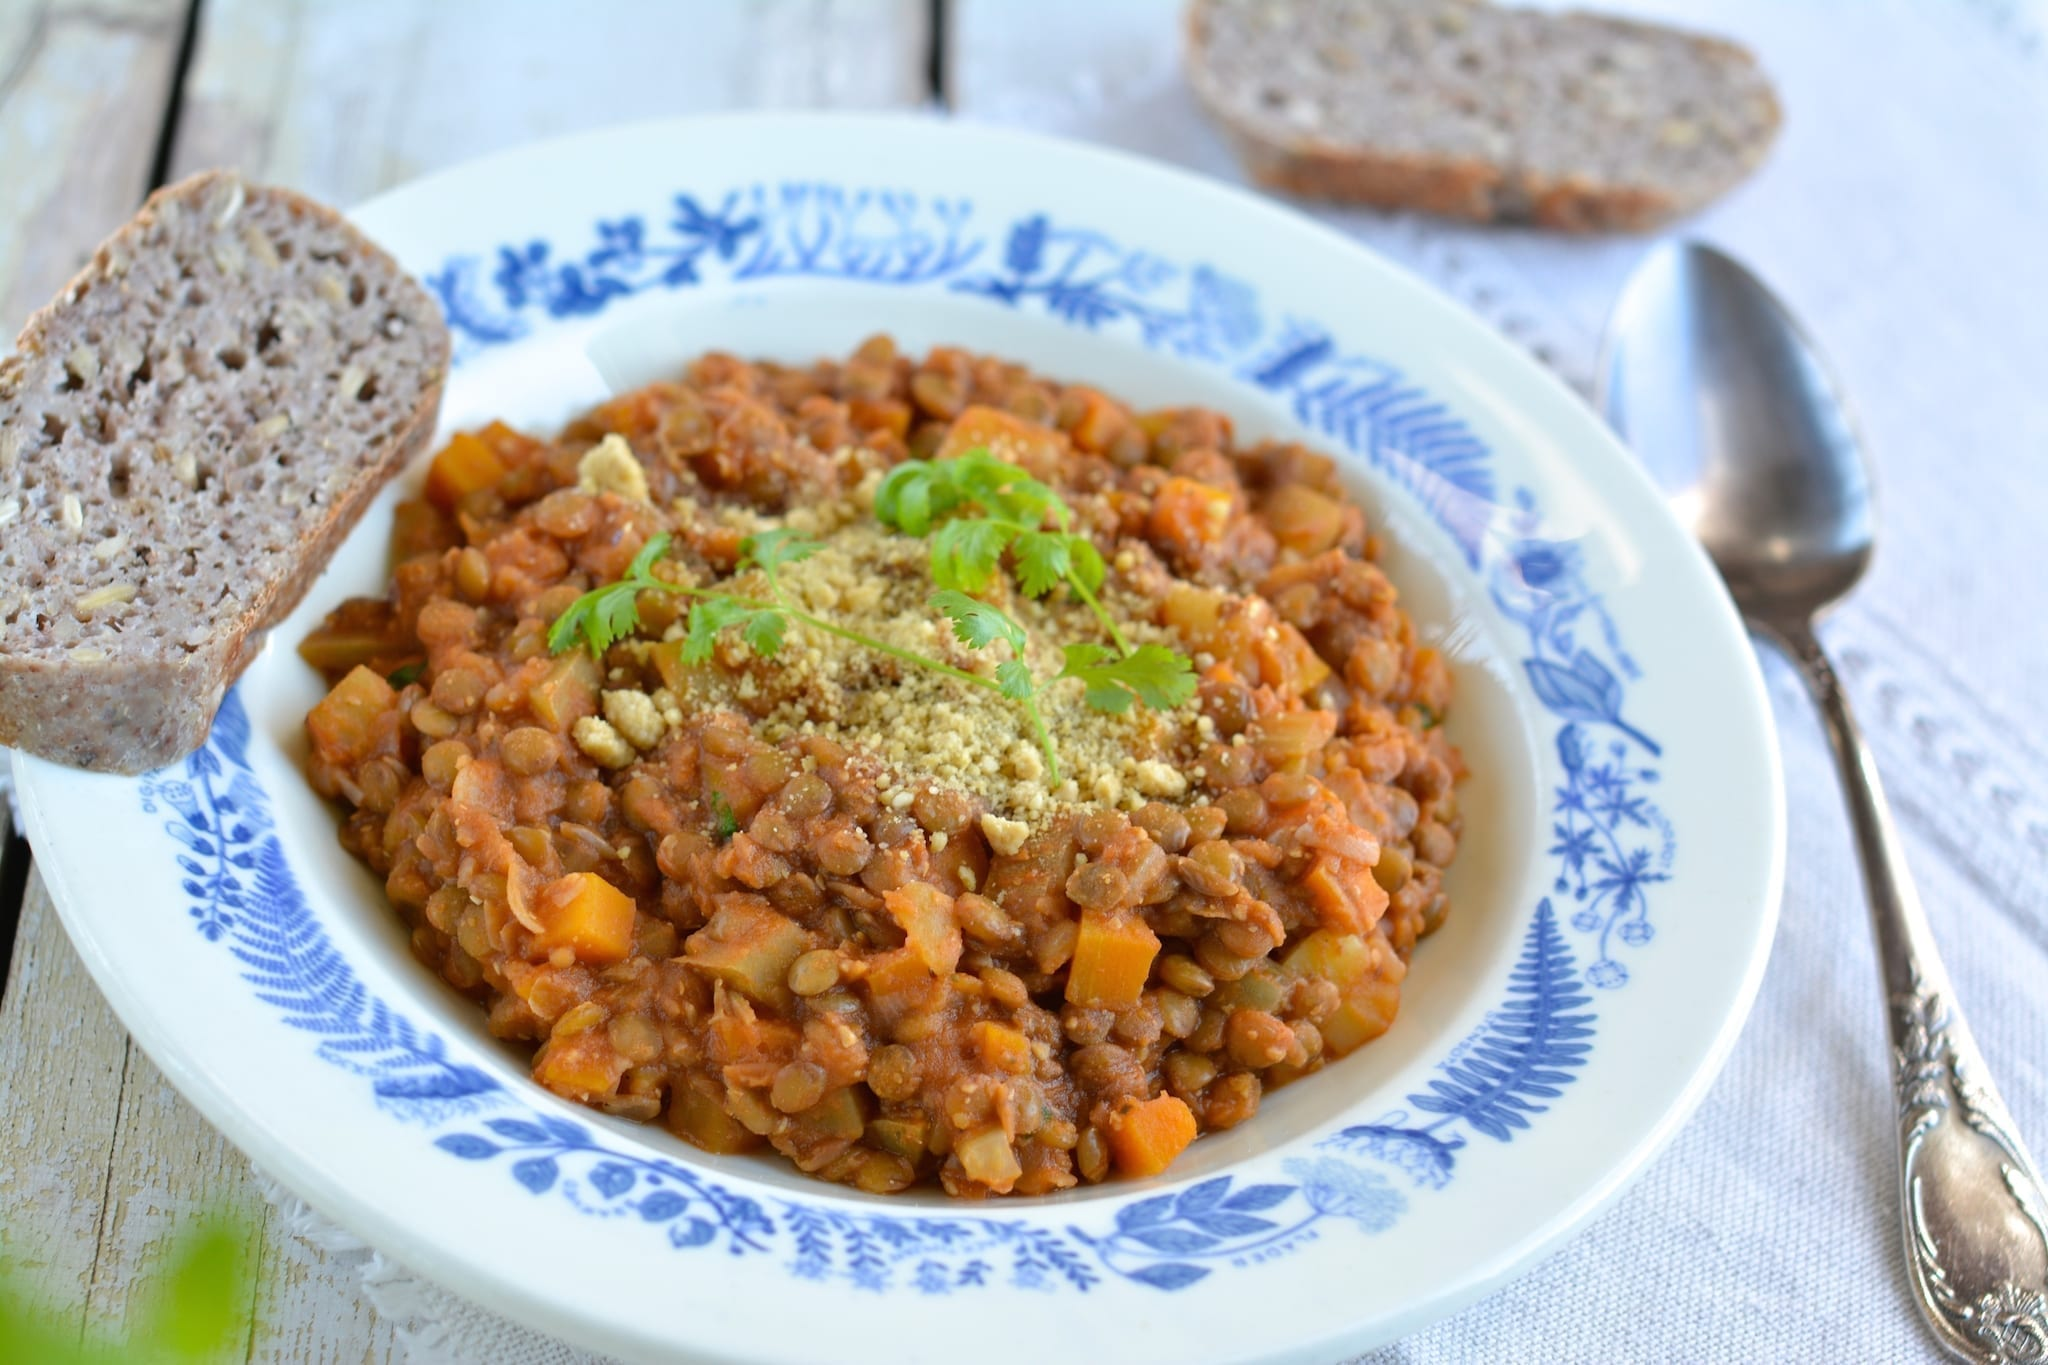 Green Lentil Stew with Tomatoes